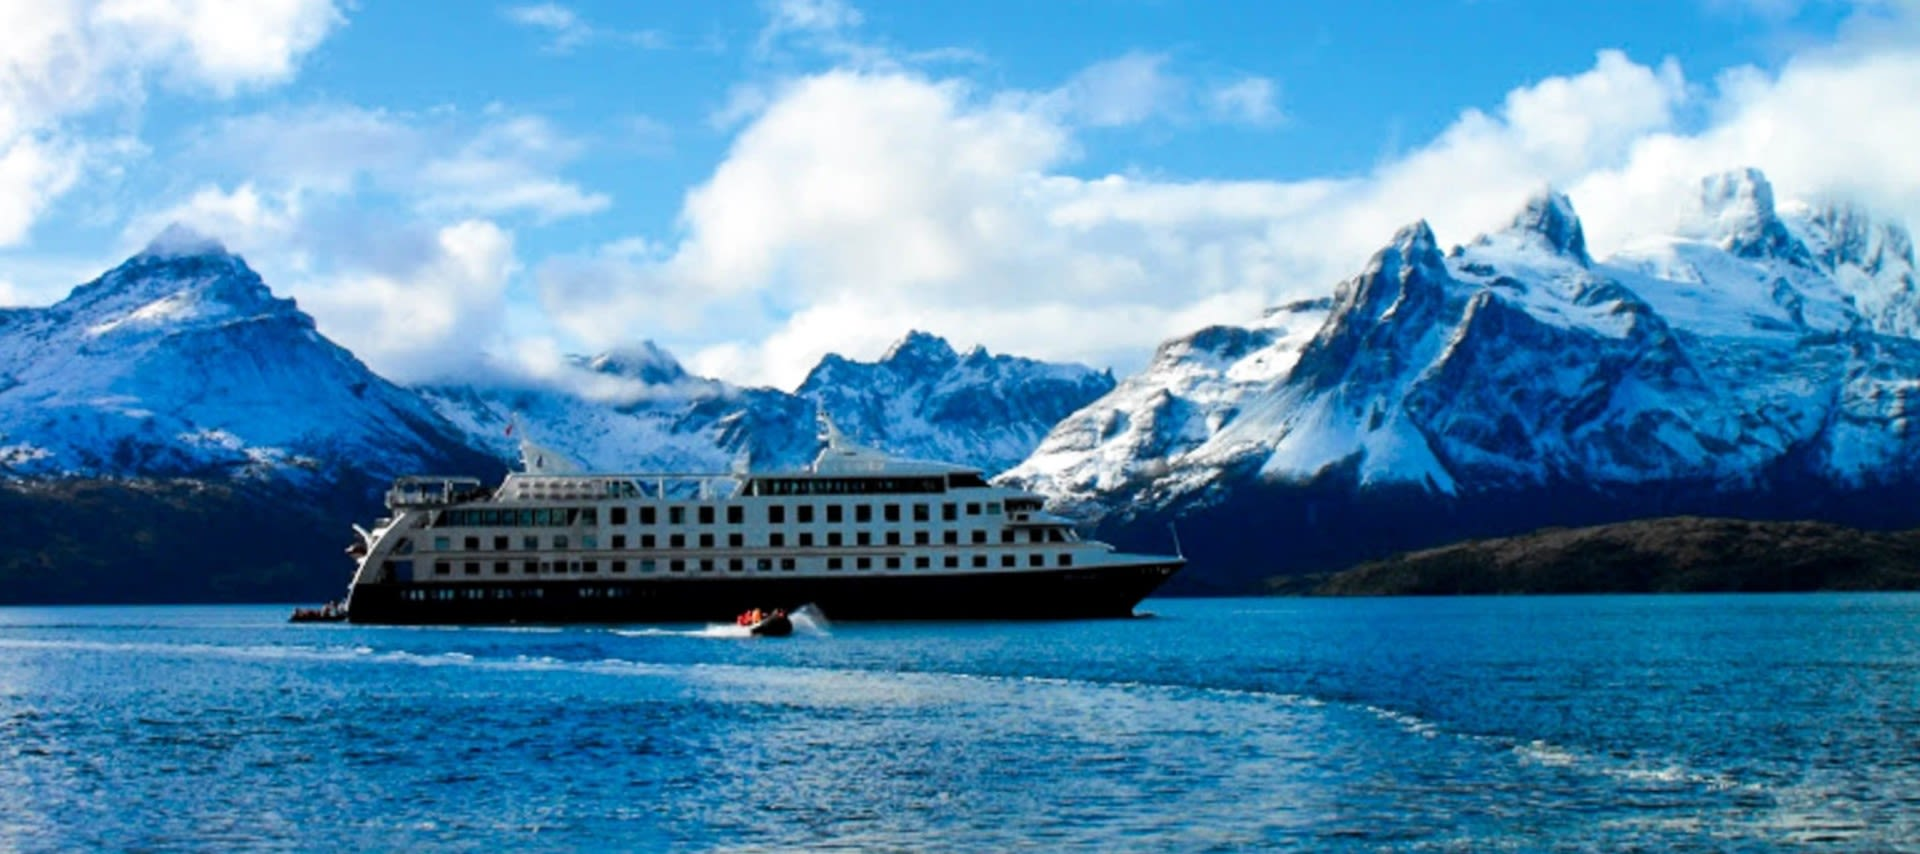 Argentina Cruise ship in front of mountains in Patagonia